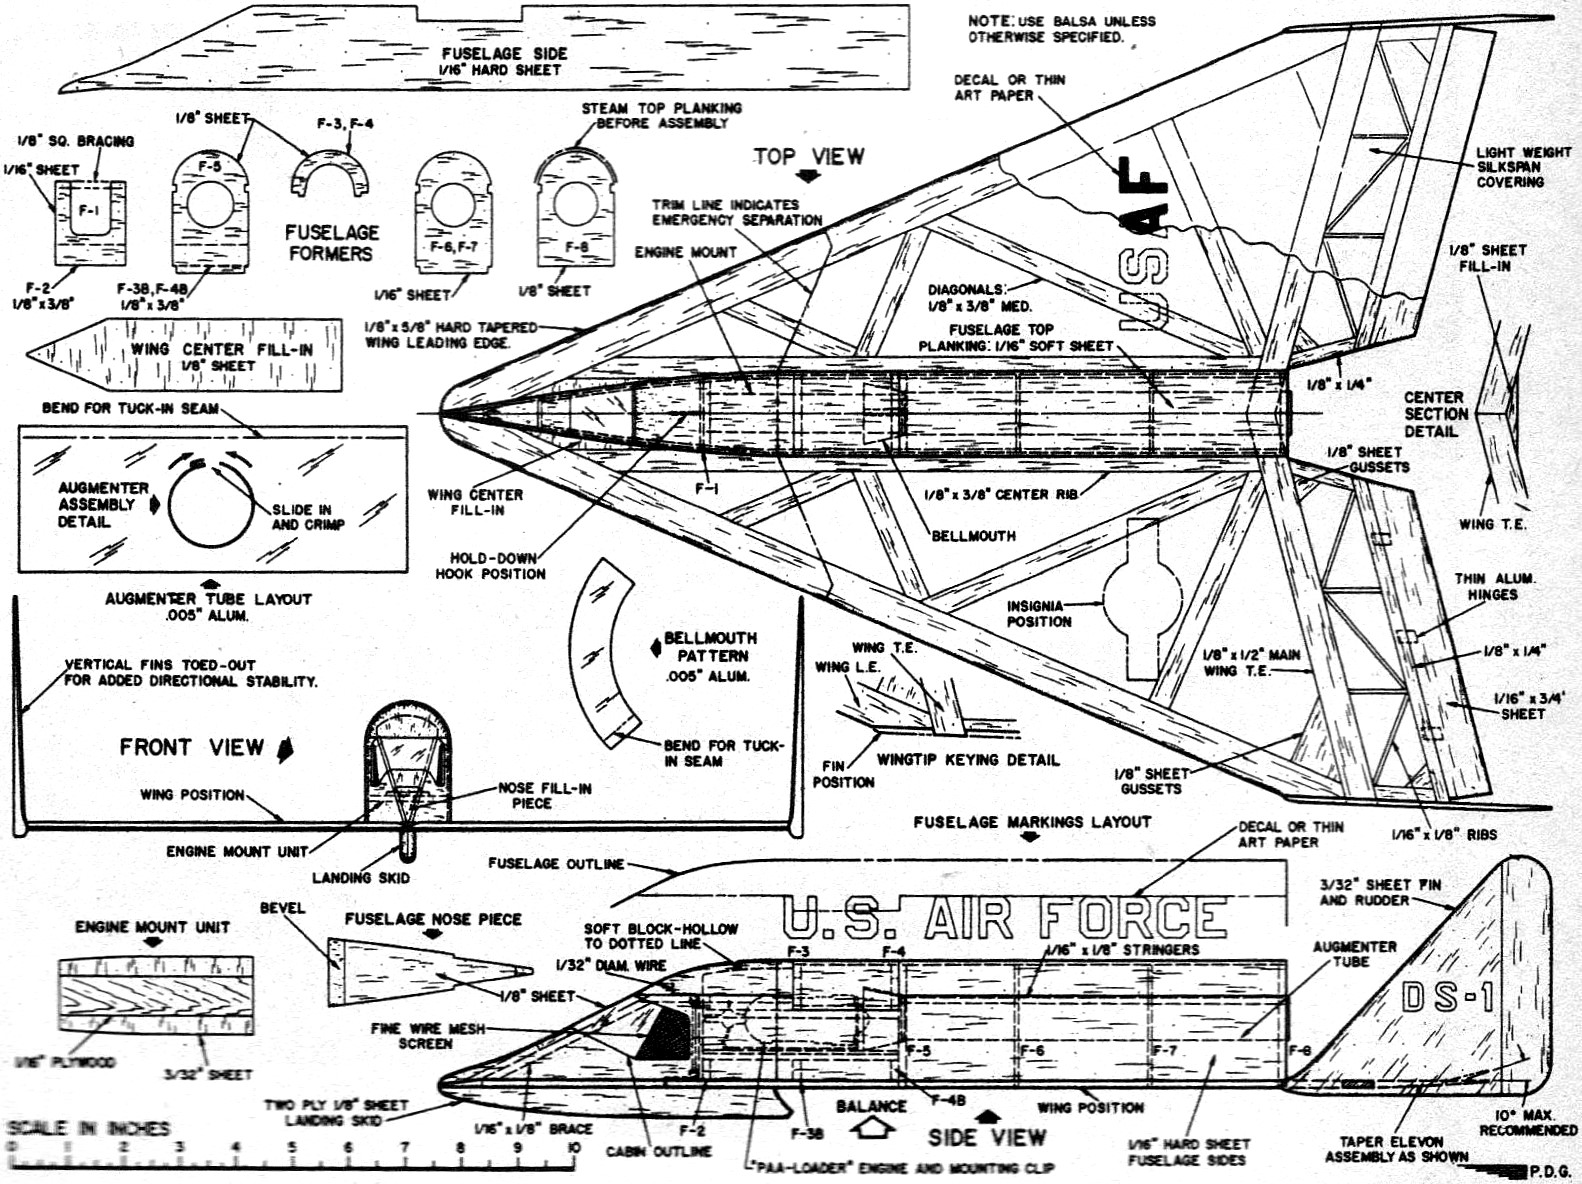 Rocket Jetex Powered Dyna Soar Article Plans July 1962 American Diagram Of A Model Engine Airplanes And Rockets